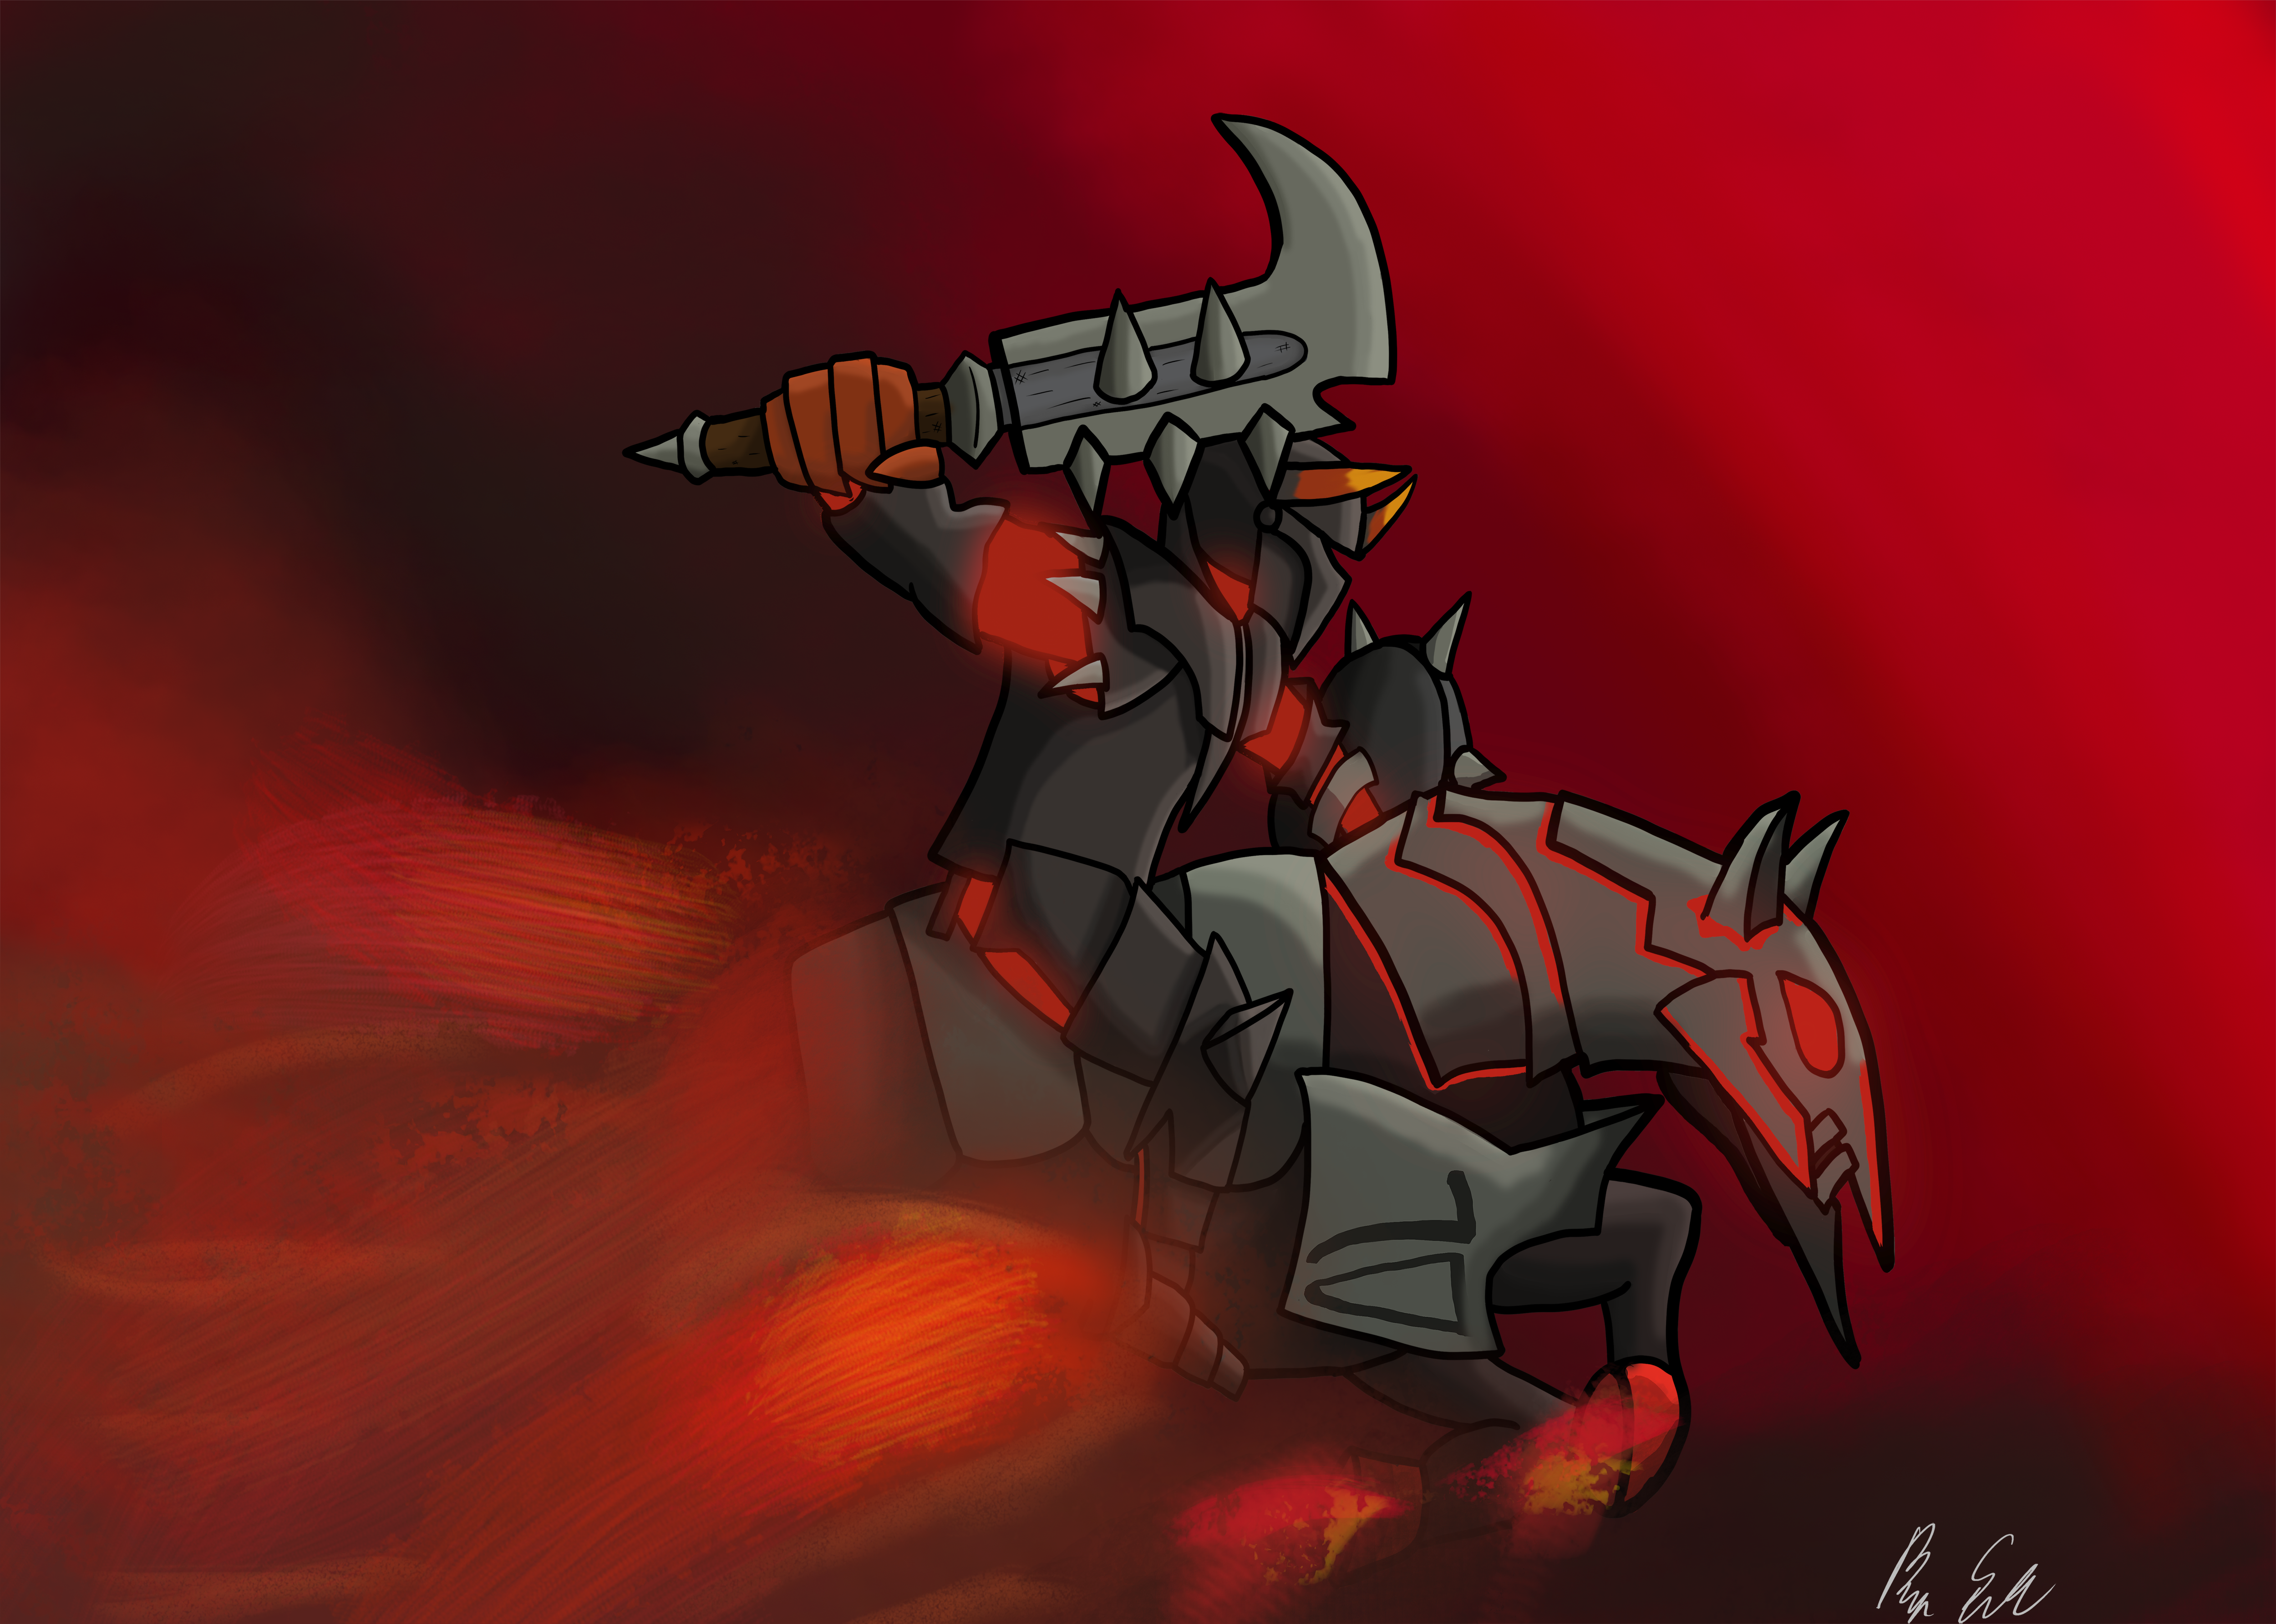 The Chaos Knight